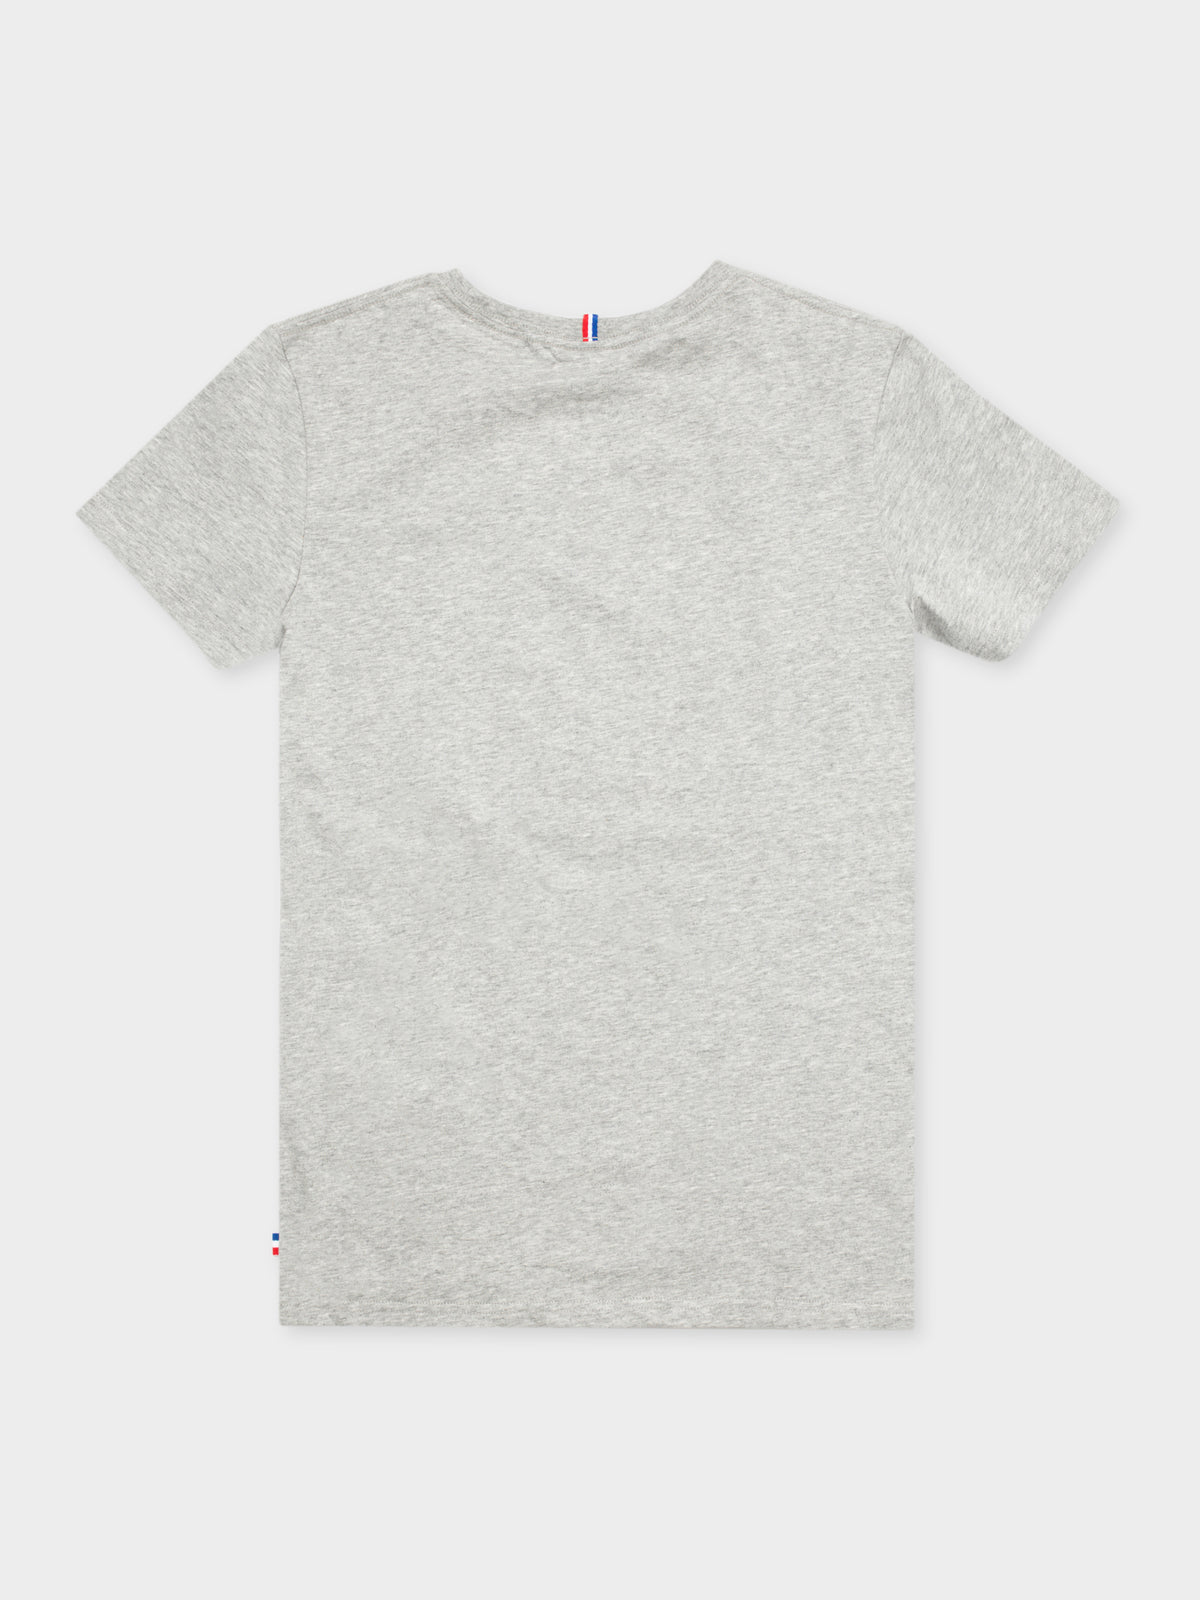 Raphael T-Shirt in Grey Marle